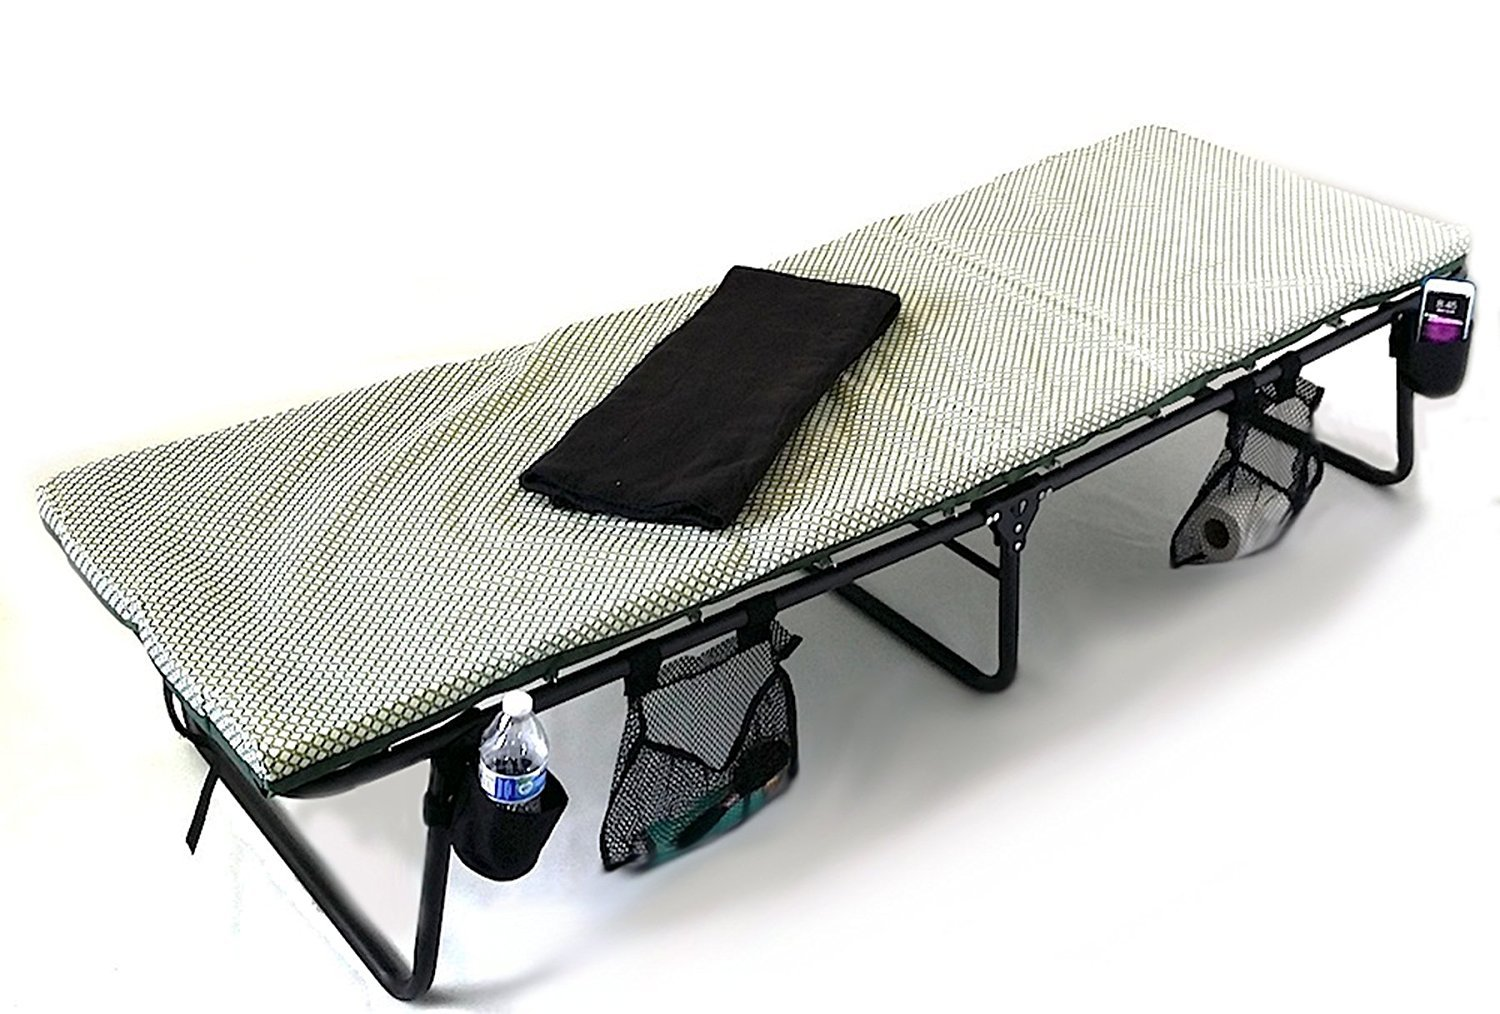 SAME DAY SHIPPING----COLEMAN HEAVY-DUTY DELUXE Folding Cot-10 YEARS WARRANTY.......A BONUS LED LIGHT AND A BONUS BLANKET INCLUDED WITH YOUR PURCHASE